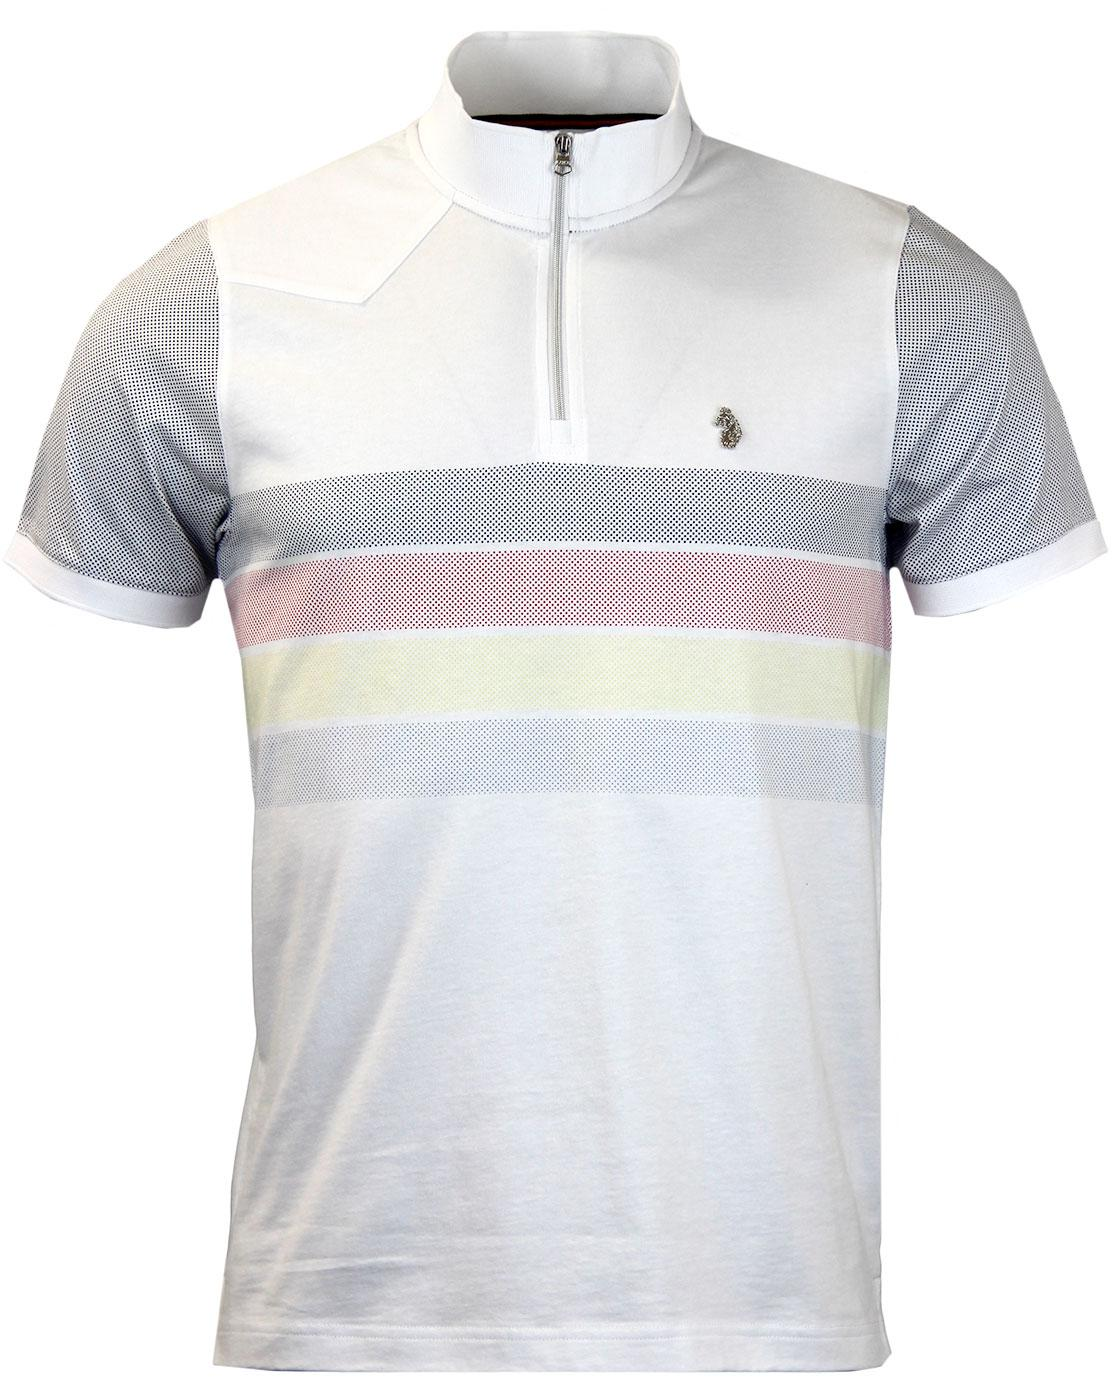 Monthly LUKE 1977 Mod Pin Dot Stripe Cycling Top